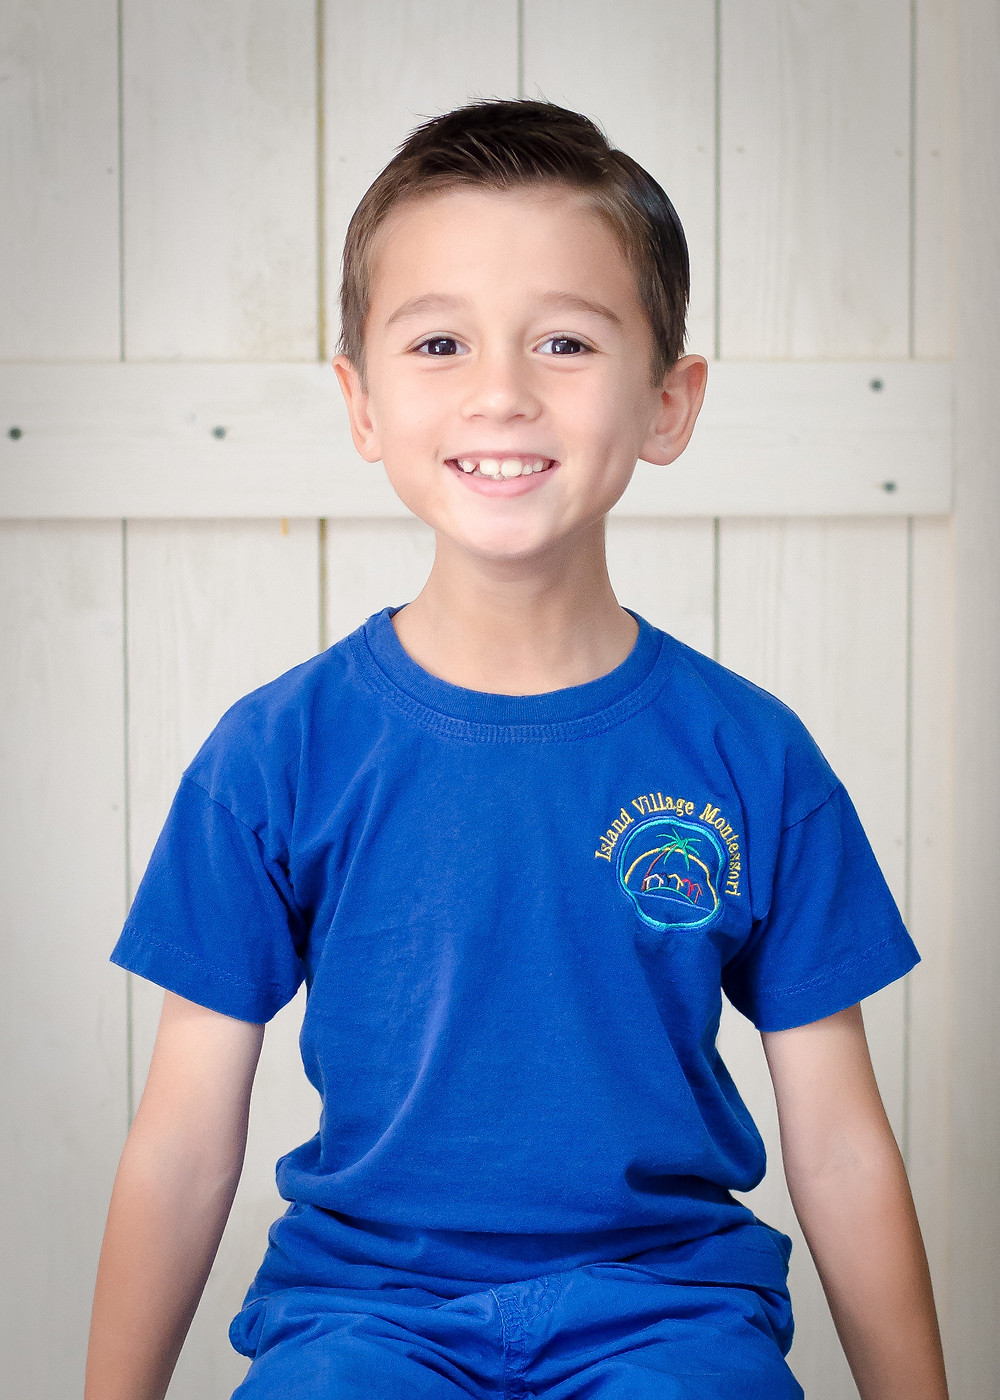 Fabrizio second grade,from Sarasota, what a cutie!!